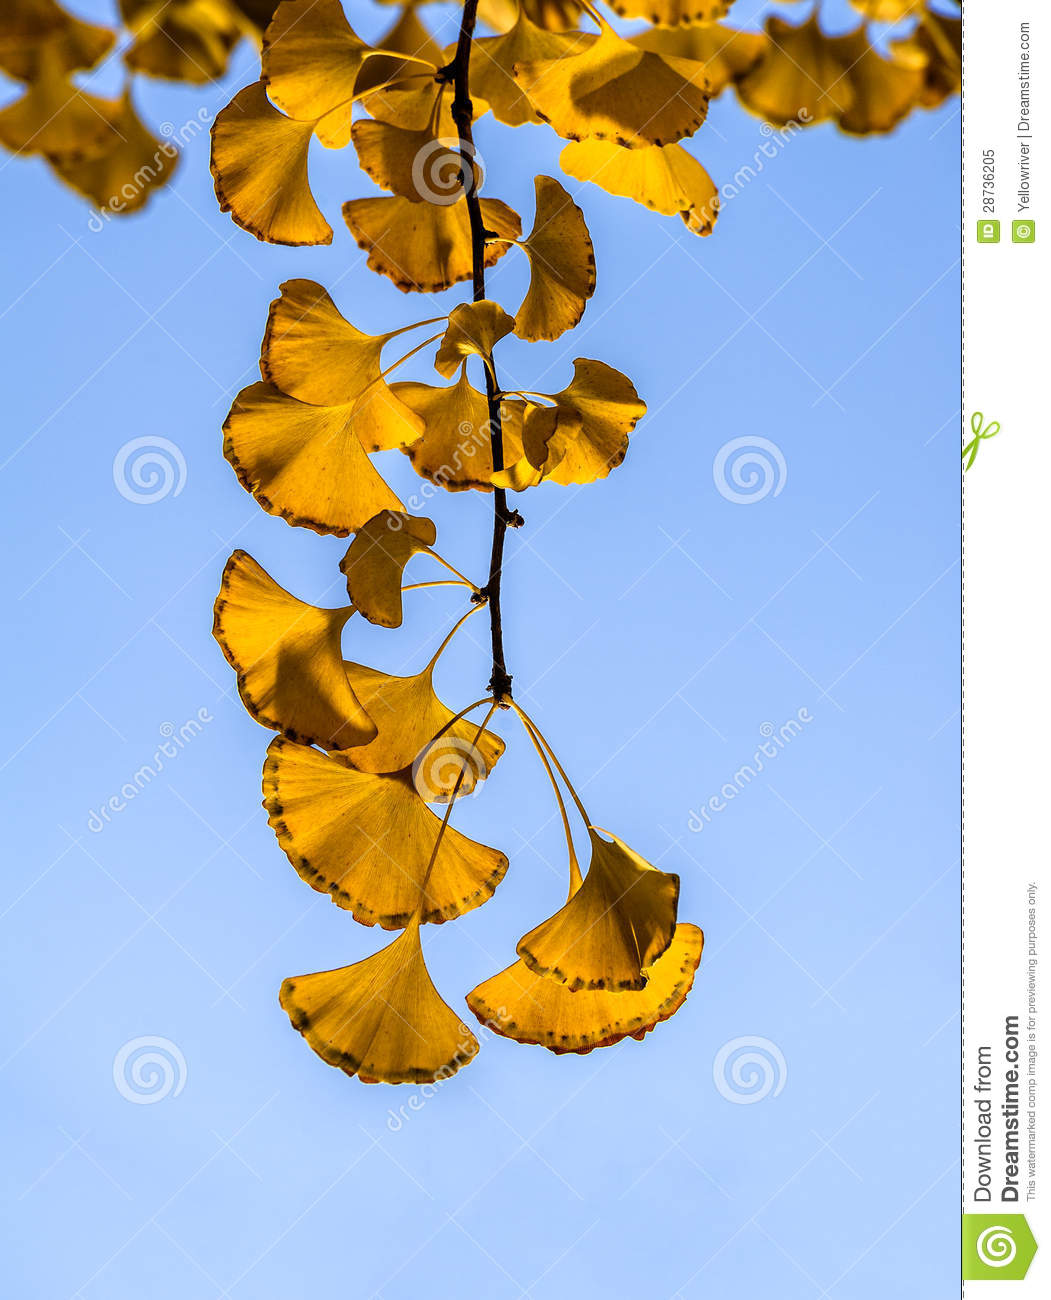 The golden ginkgo leaves against blue sky